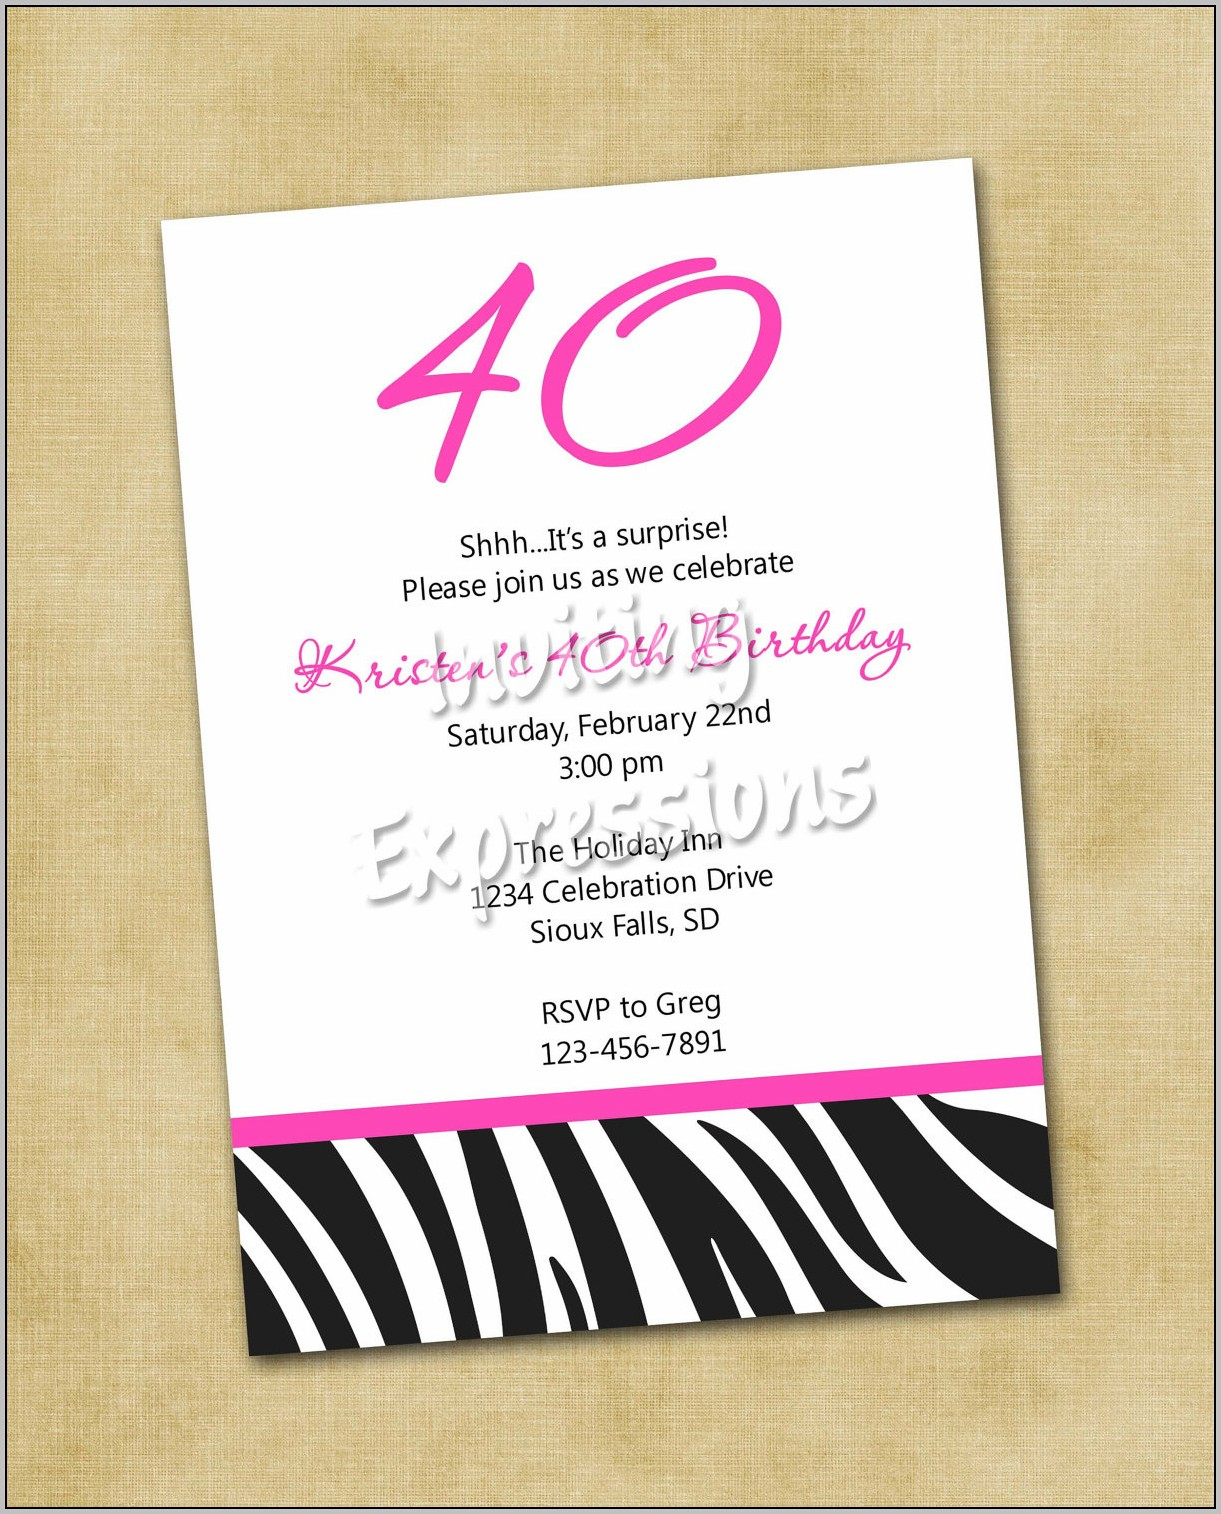 Party Invitation Templates For 40th Birthday